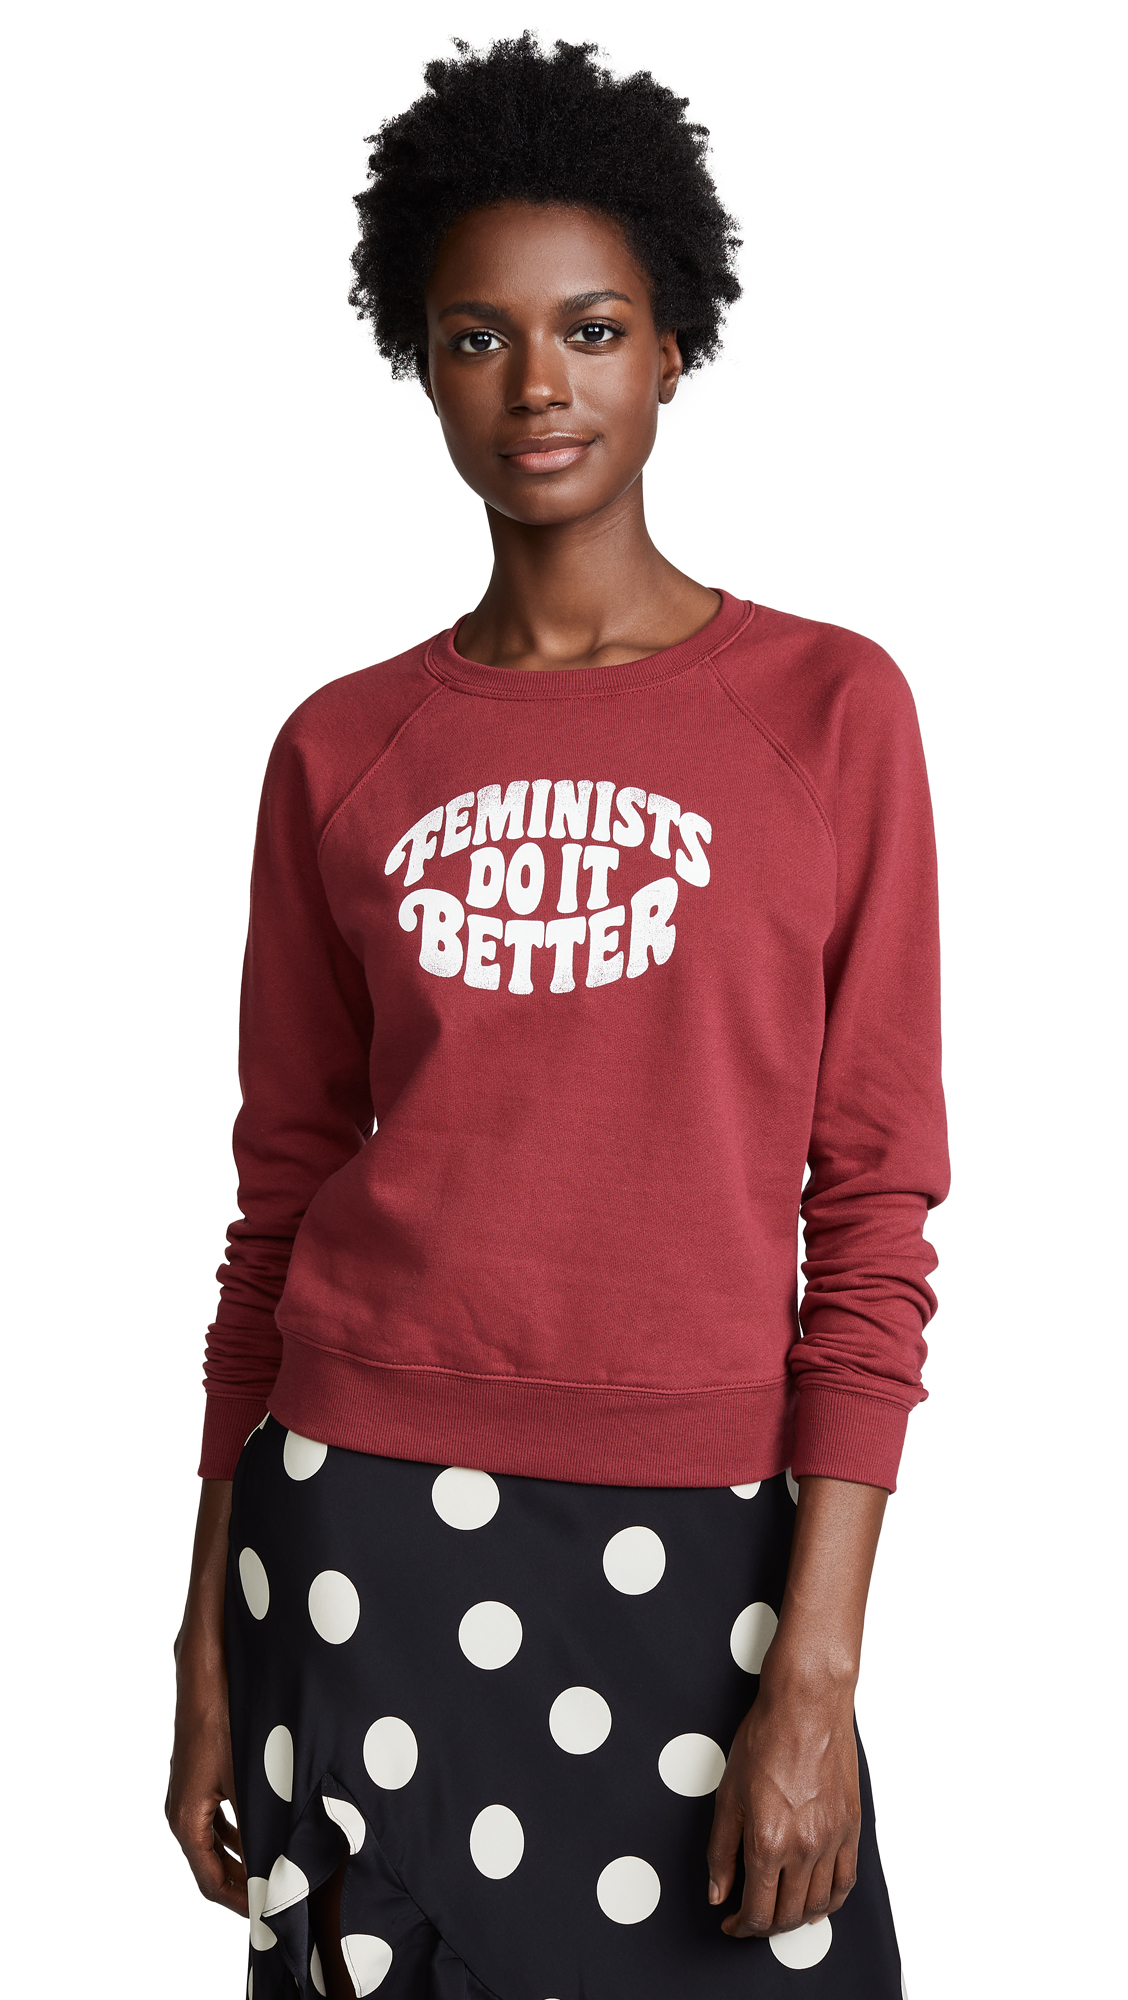 Jennings Feminists Do It Better Sweatshirt, Dark Red/ White